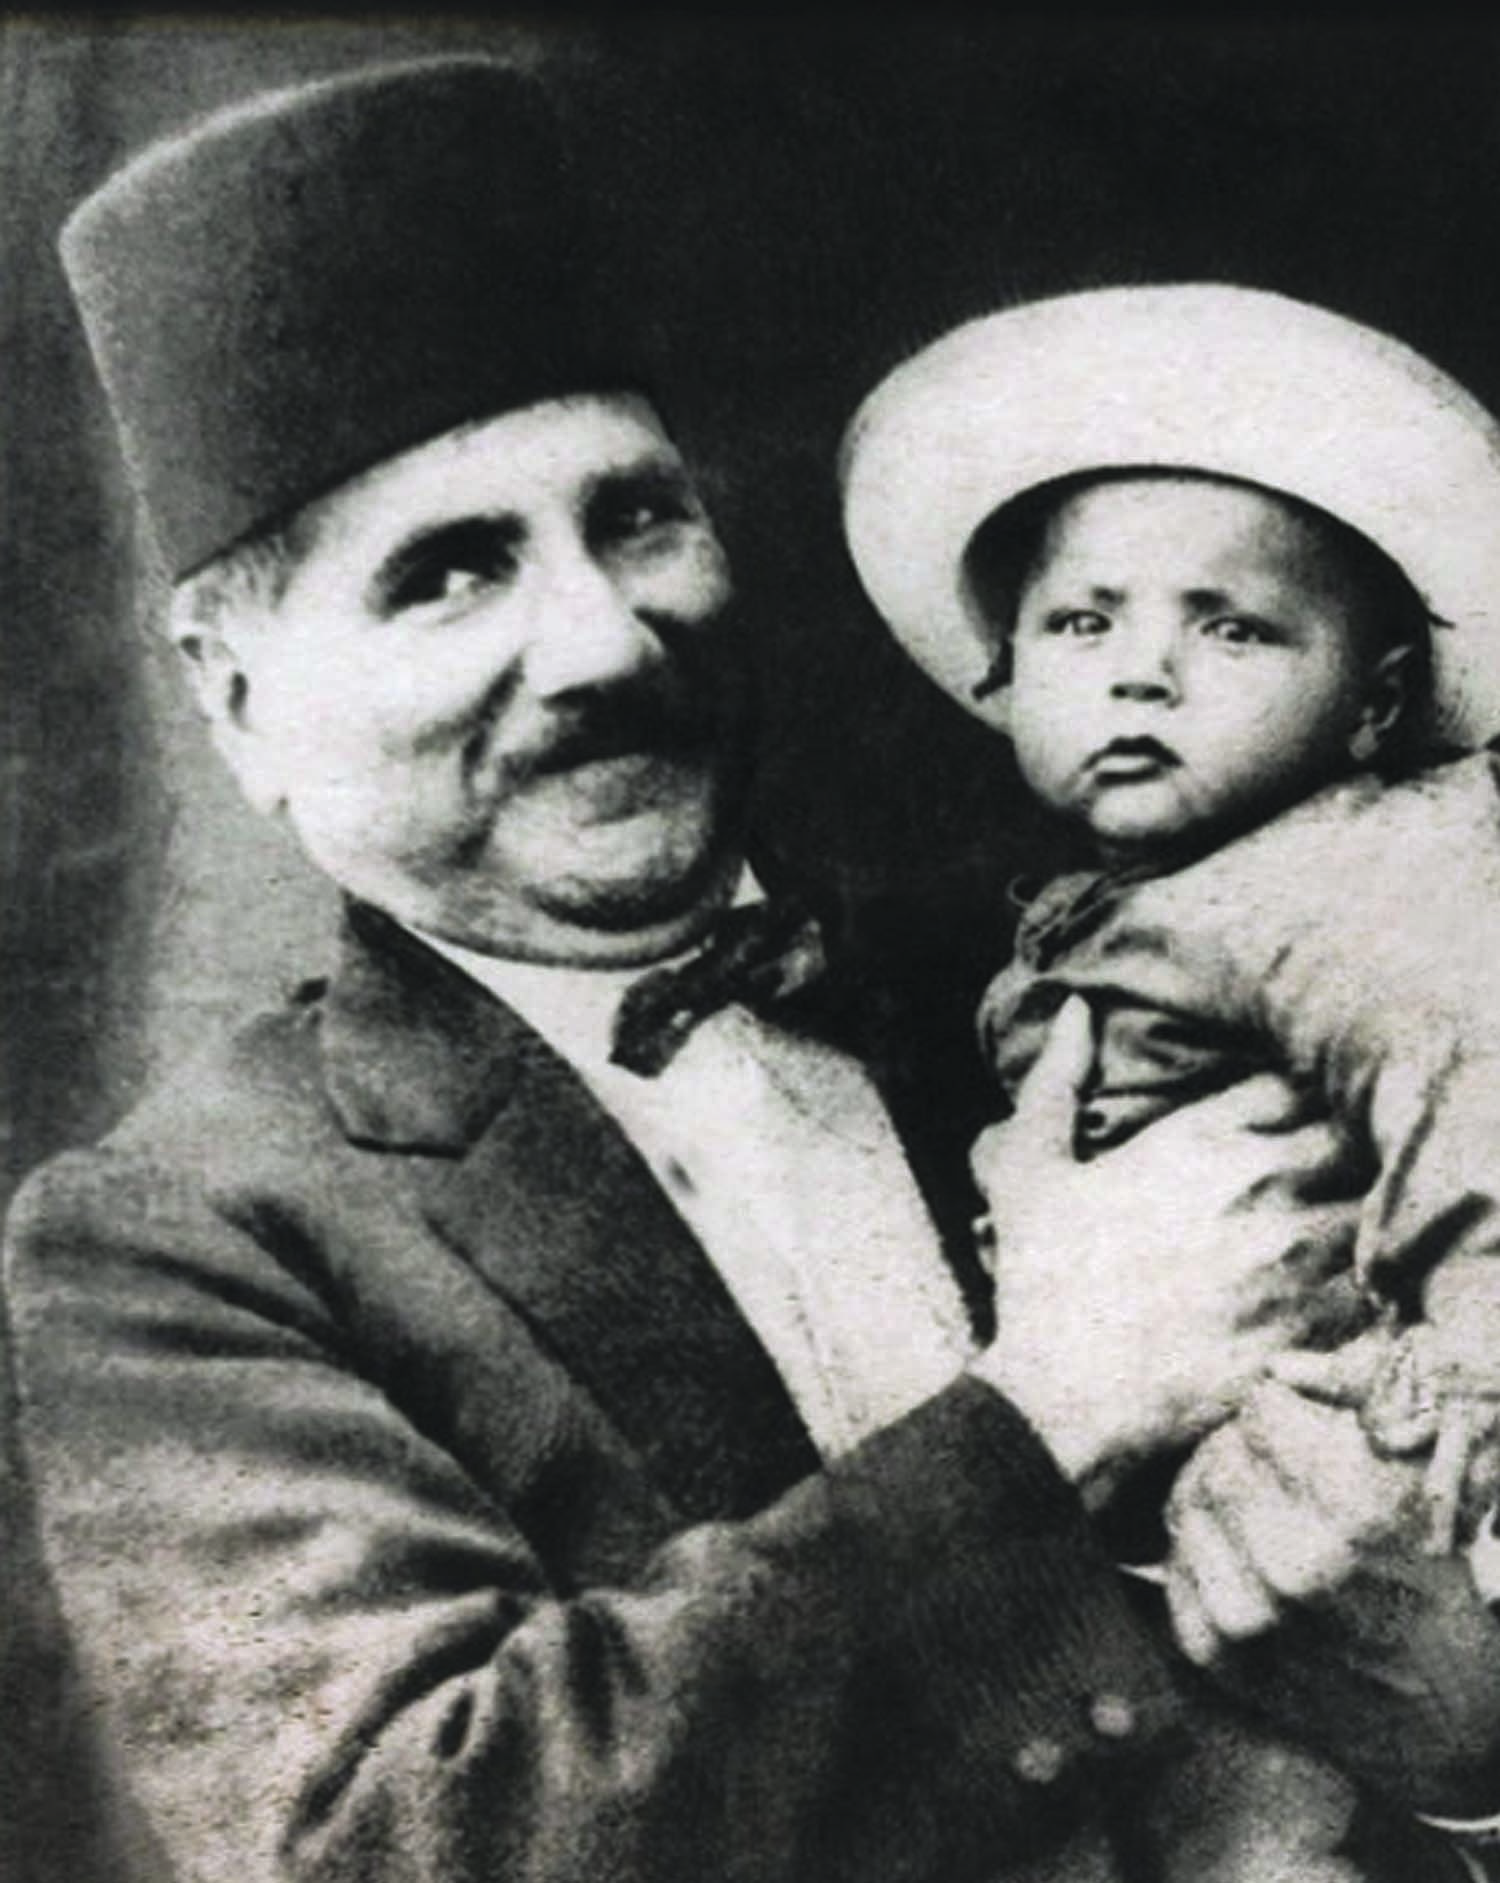 Sir Muhammad Iqbal with his son Javed Iqbal in 1925. Javed was a philosopher of sorts himself and pursued a career in law, serving as a Justice of the Supreme Court of Pakistan after having been the Chief Justice of Lahore High Court. Photo: The Allama Iqbal Collection.